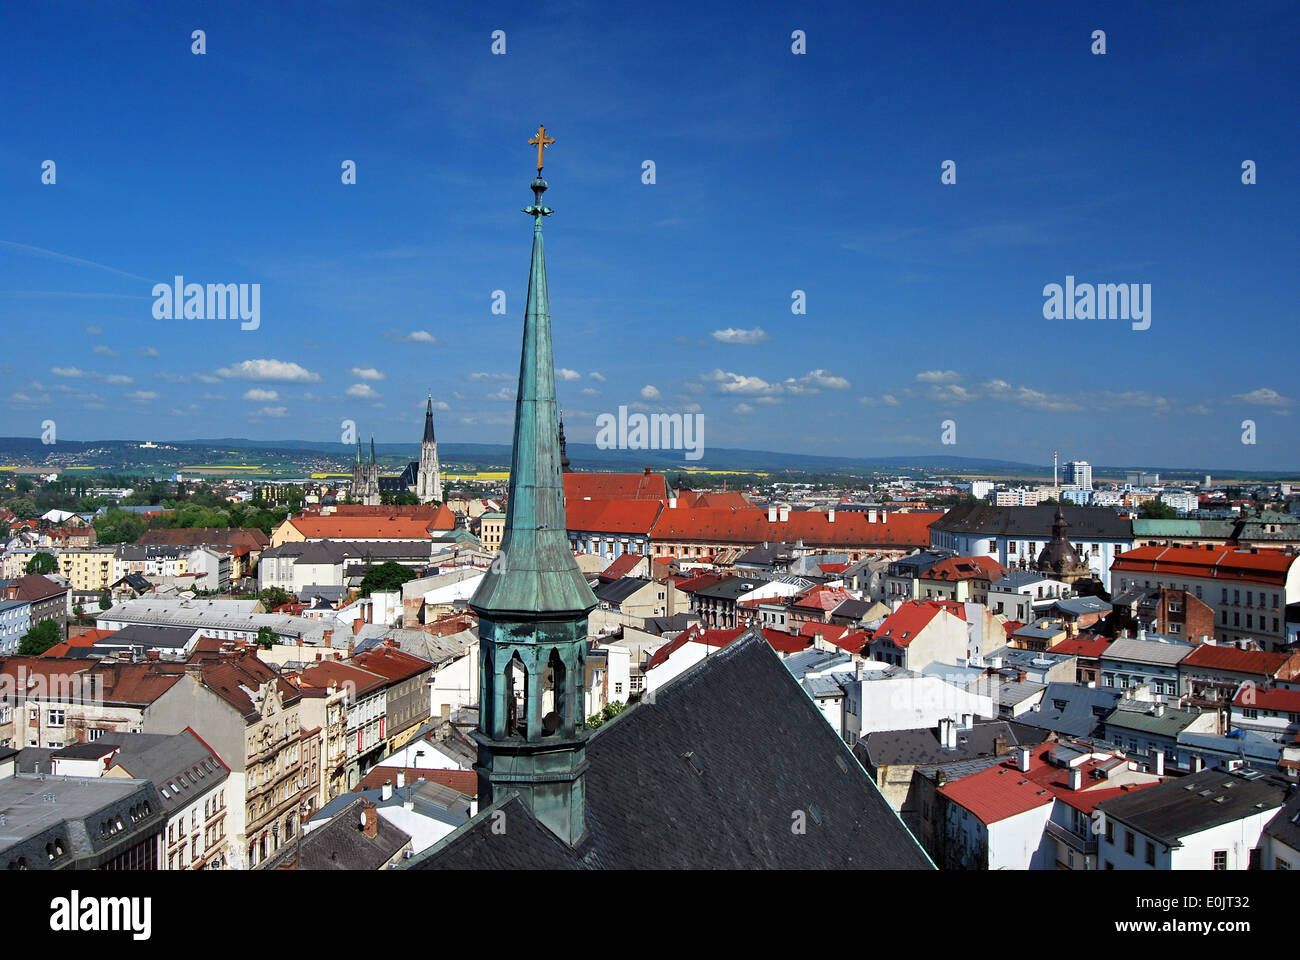 Olomouc city from top of Sv. Moric church - Stock Image